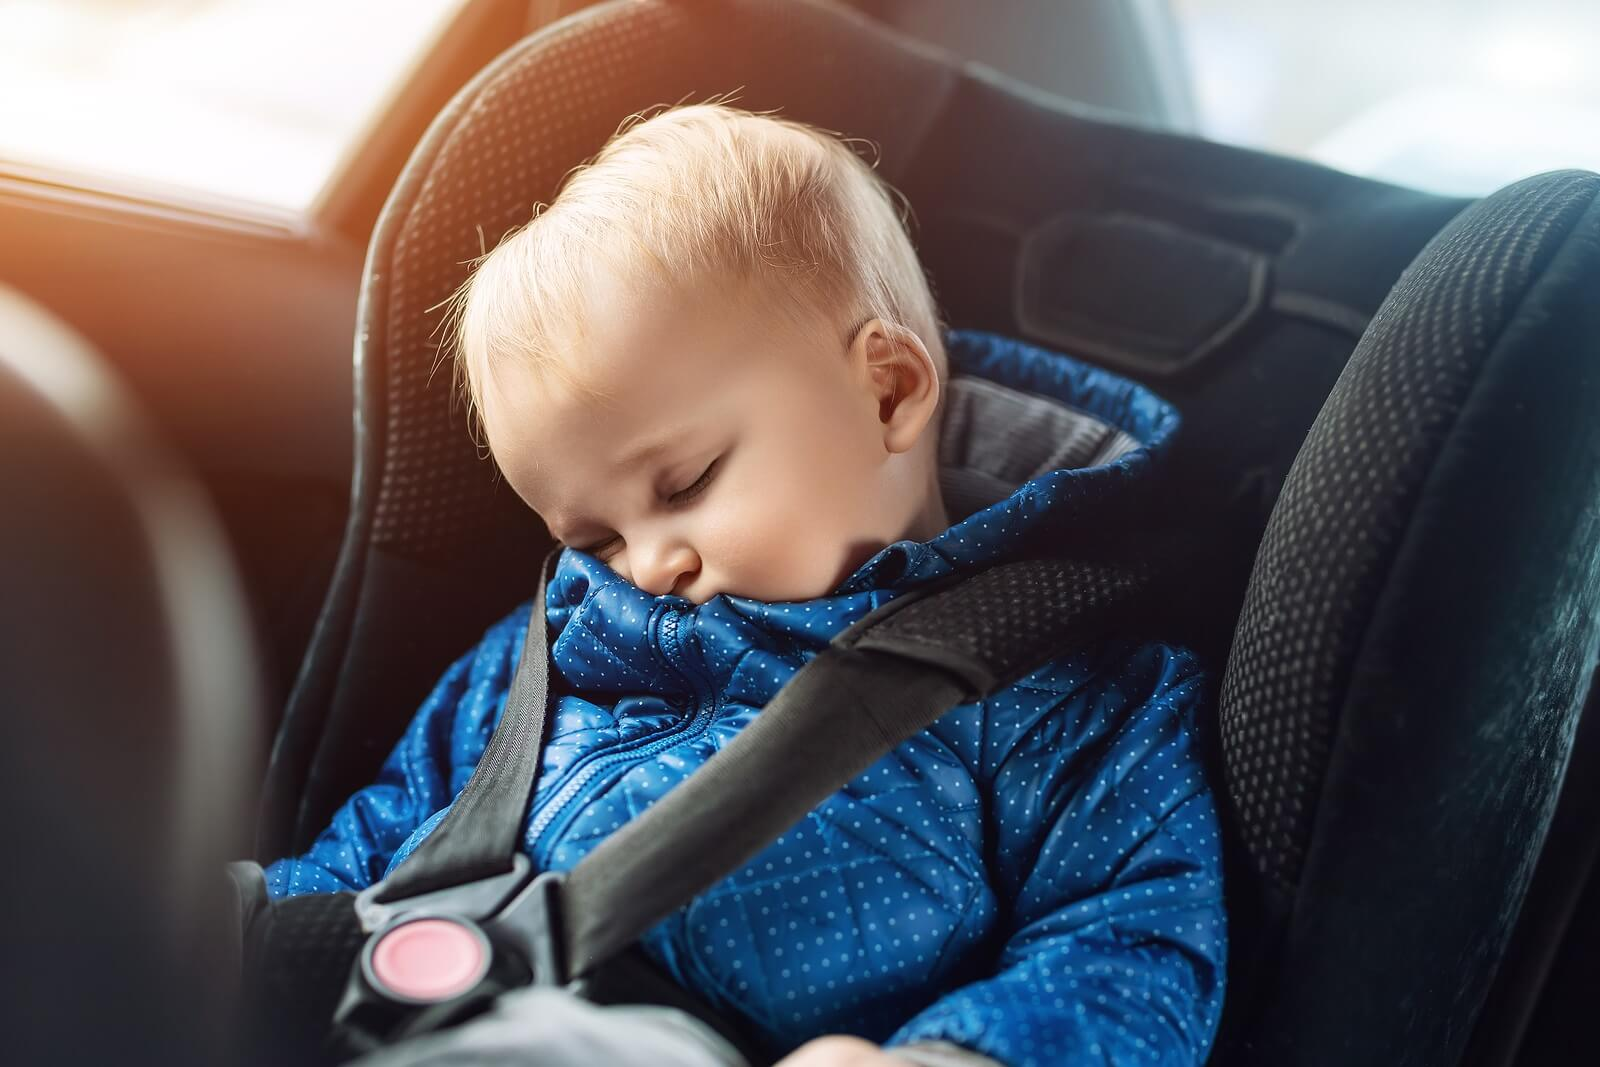 compensation for defetive baby seat